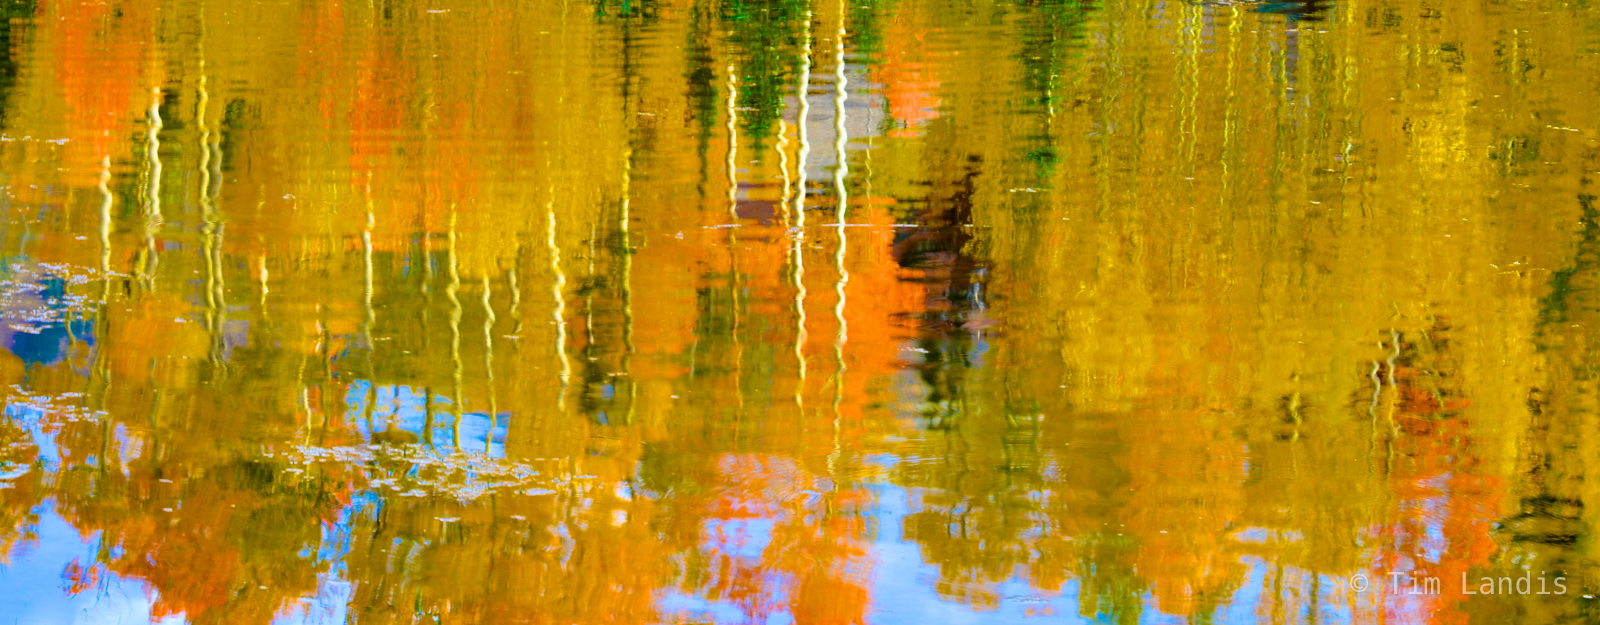 On golden pond, yellow and orange aspens, photo